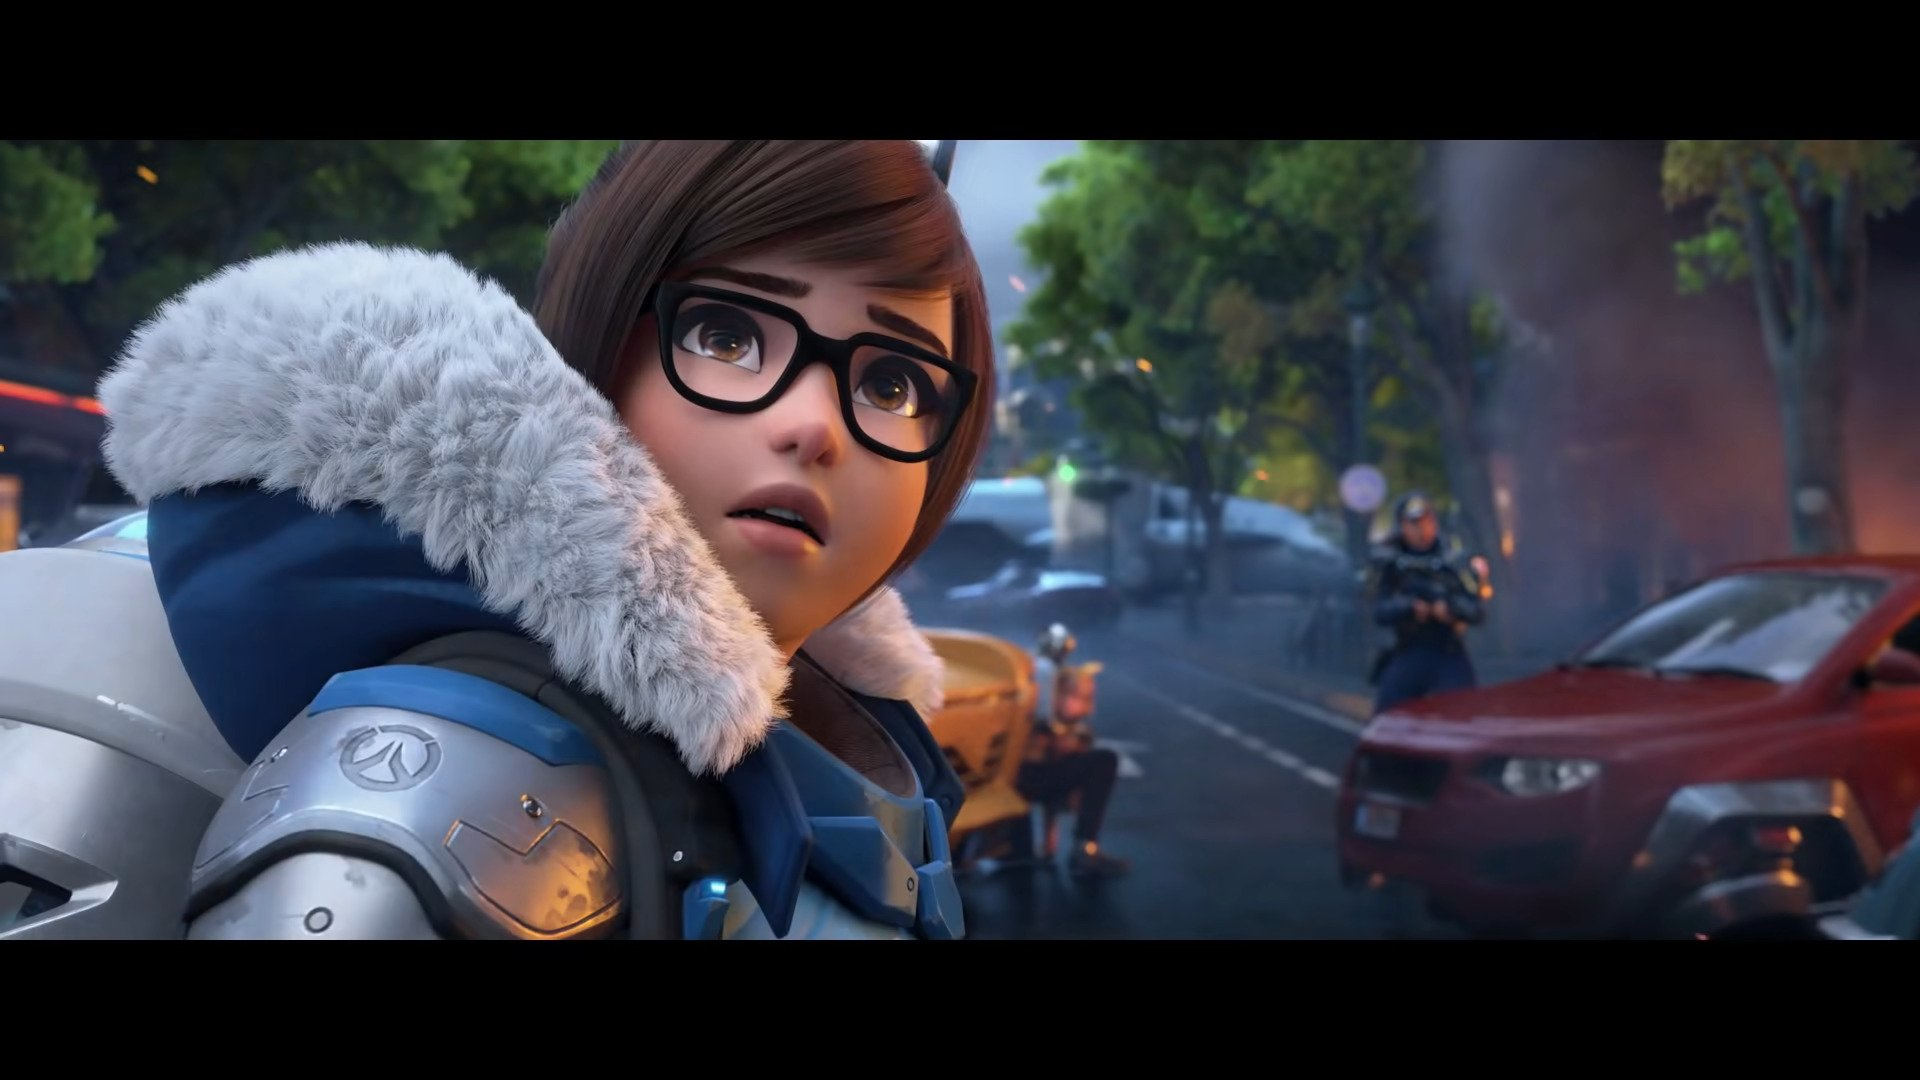 Newest Overwatch Patch Update Buffs Mei and Baptiste, Adjusts Some Heroes' Health